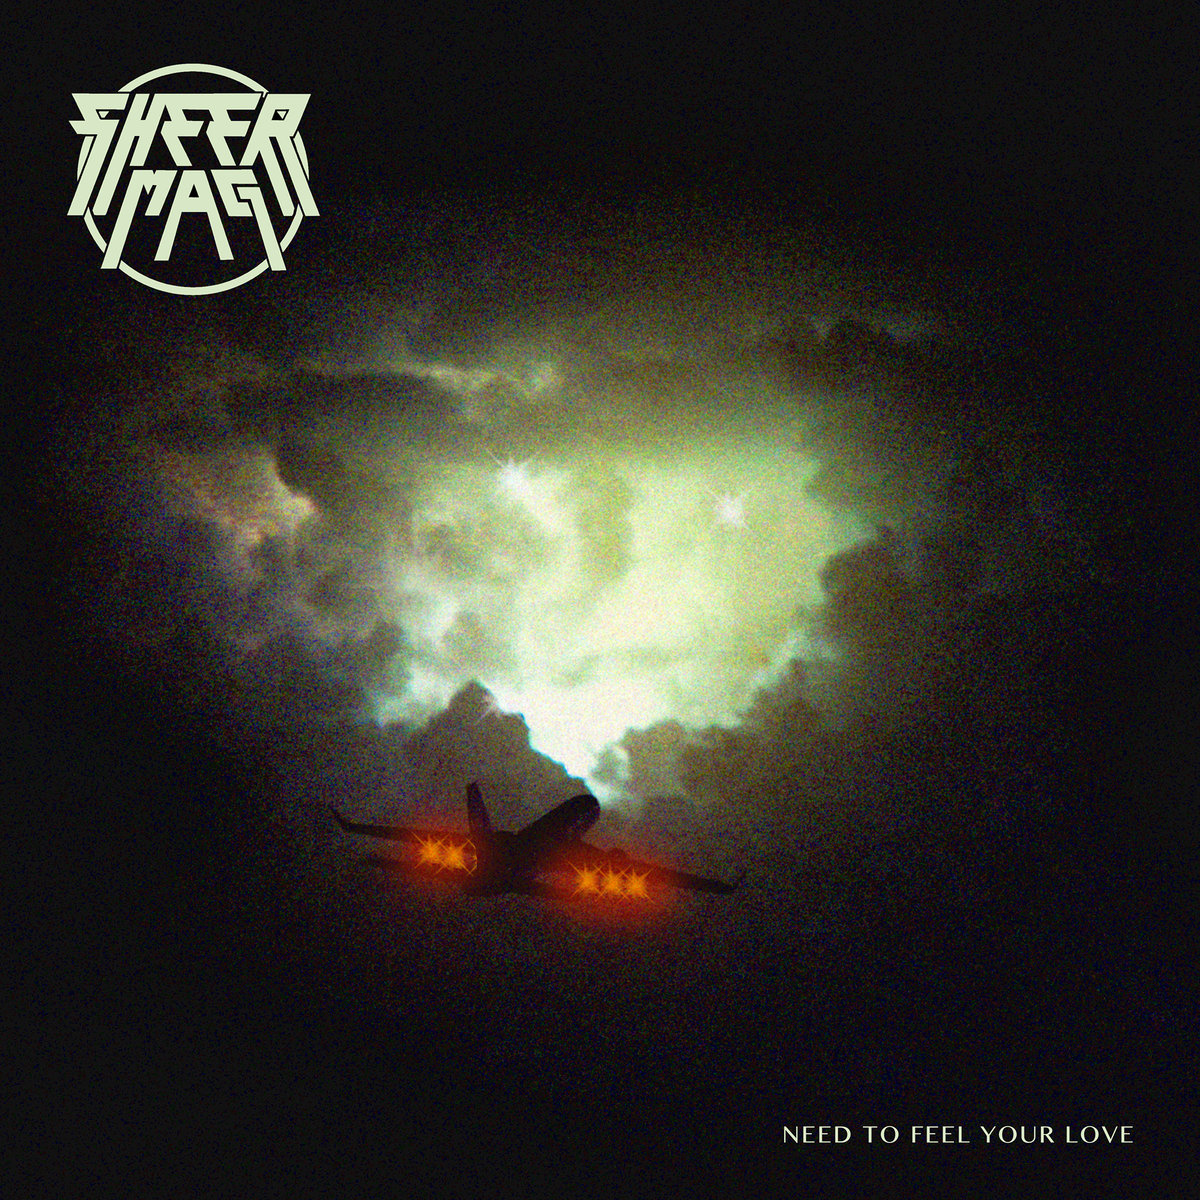 Need to feel your love by sheer mag